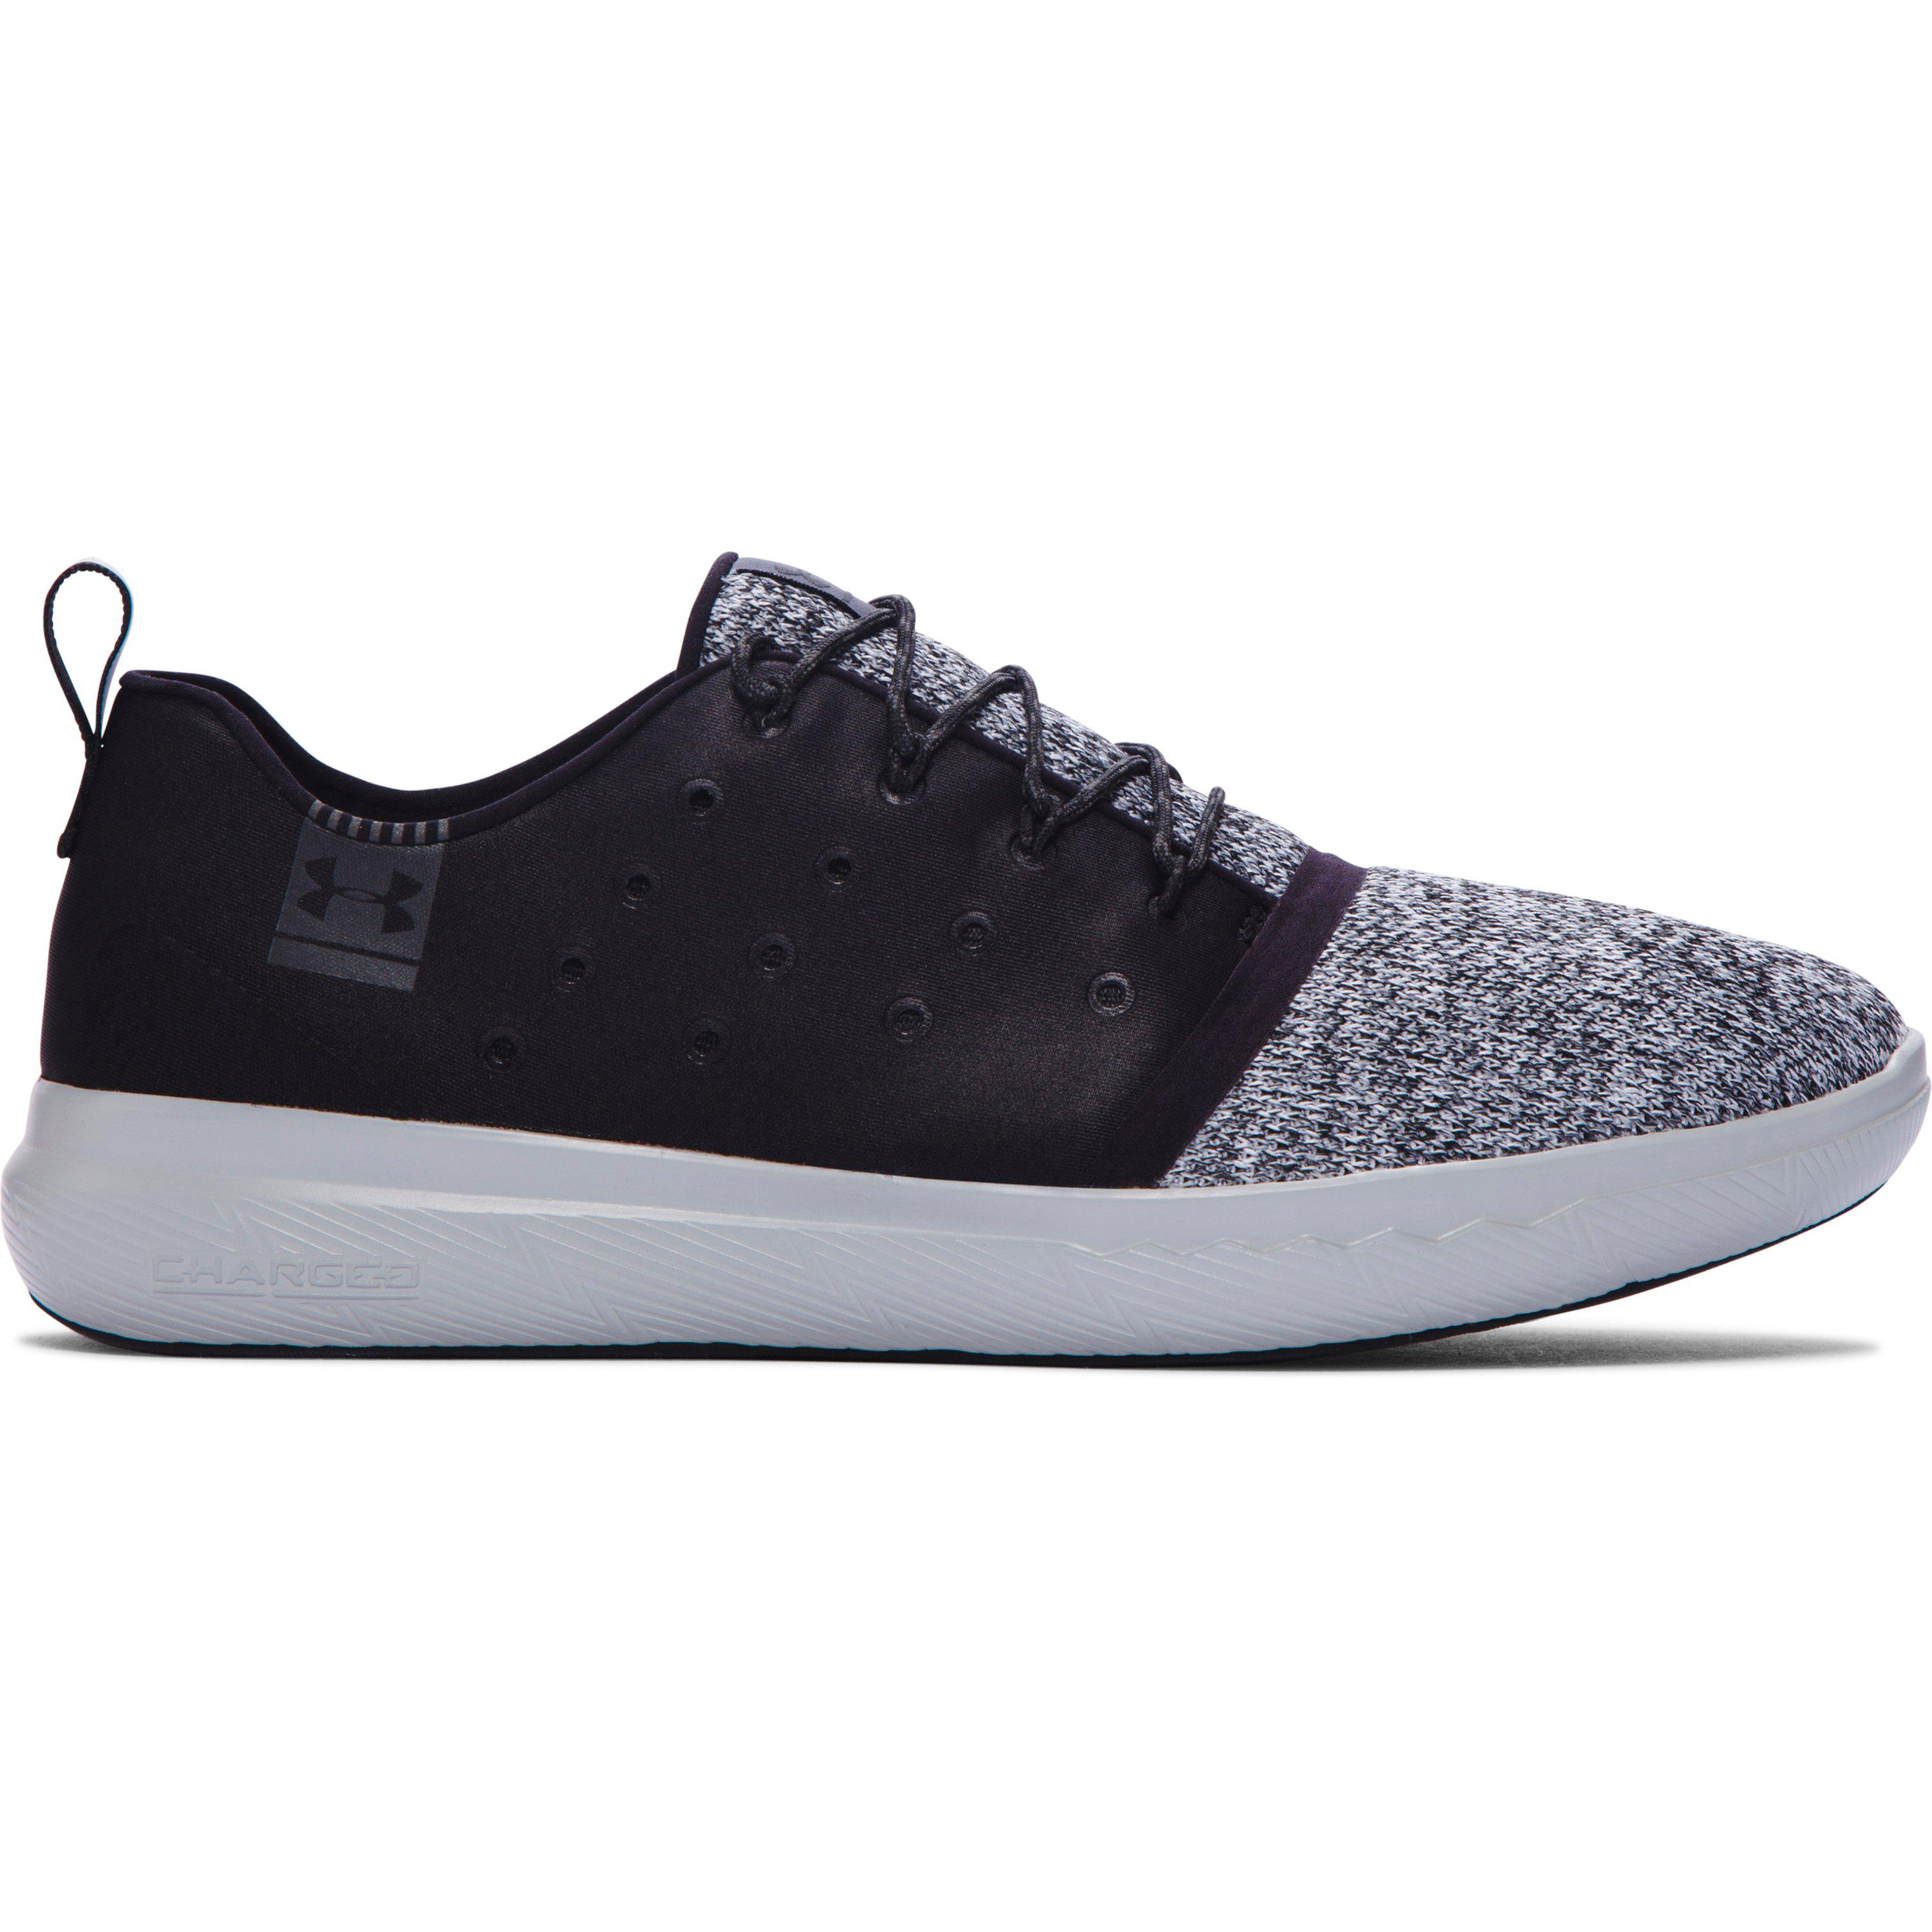 Under Armour. Purple Men's Ua Charged 24/7 Low Running Shoes